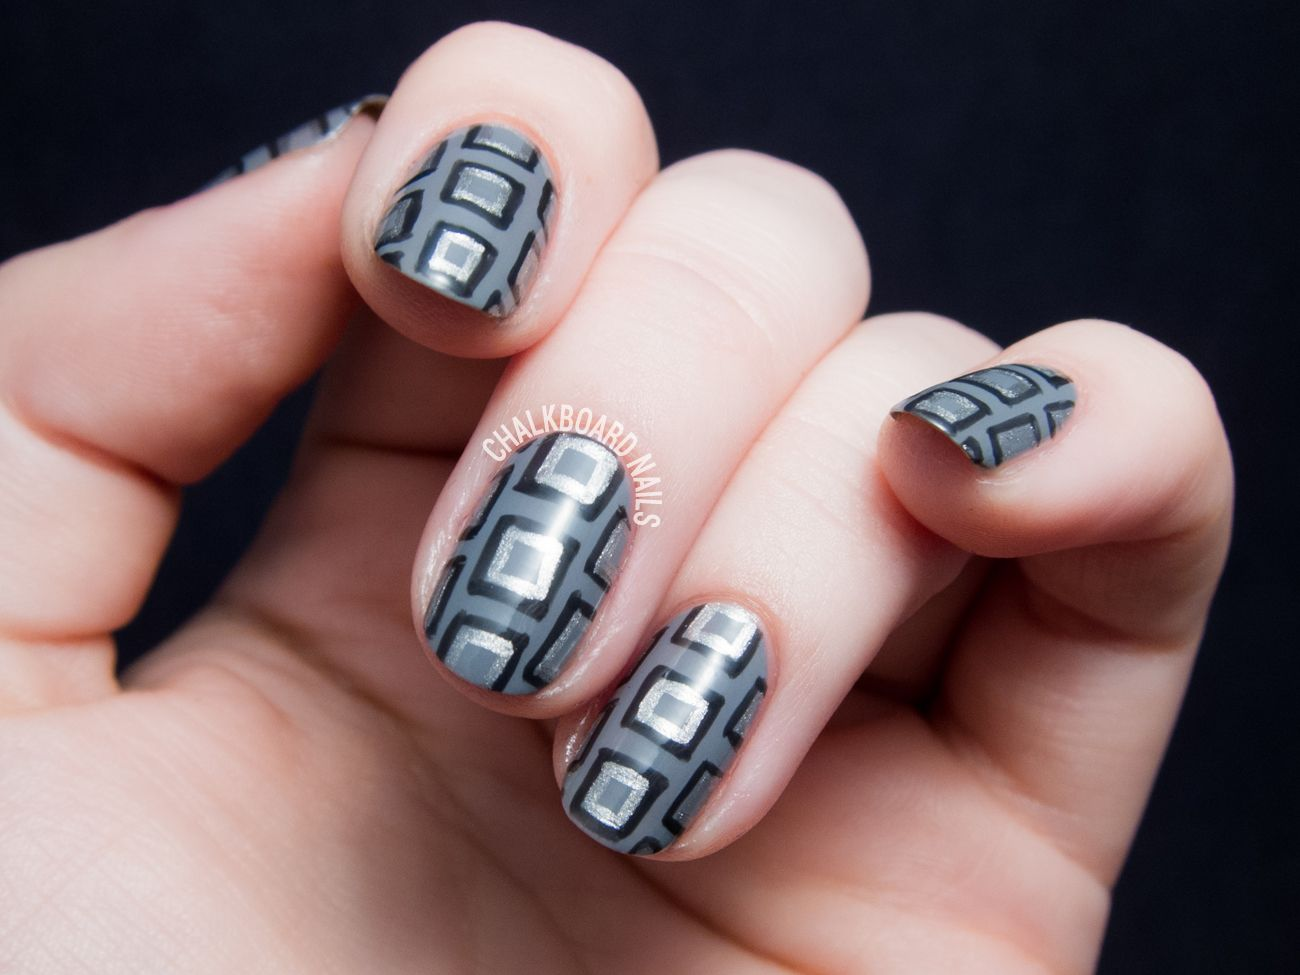 Embrace the Grey with This Geometric Necktie Patterned Nail Art ...